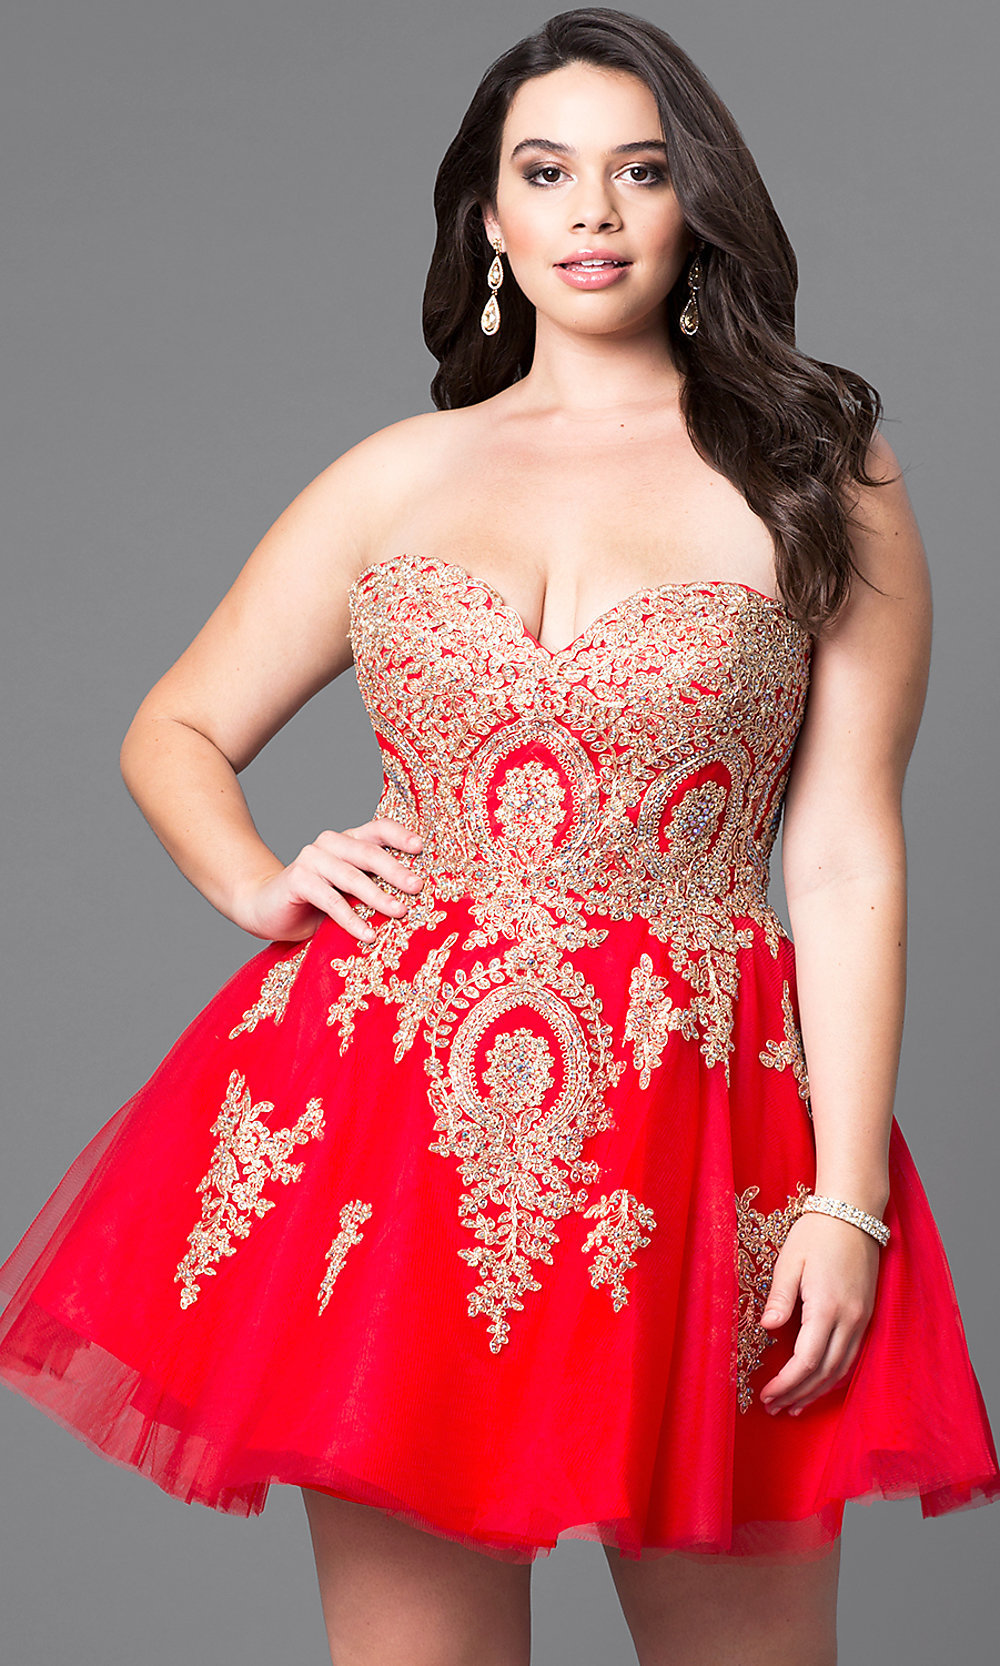 Strapless Plus Size Corset Party Dress Promgirl